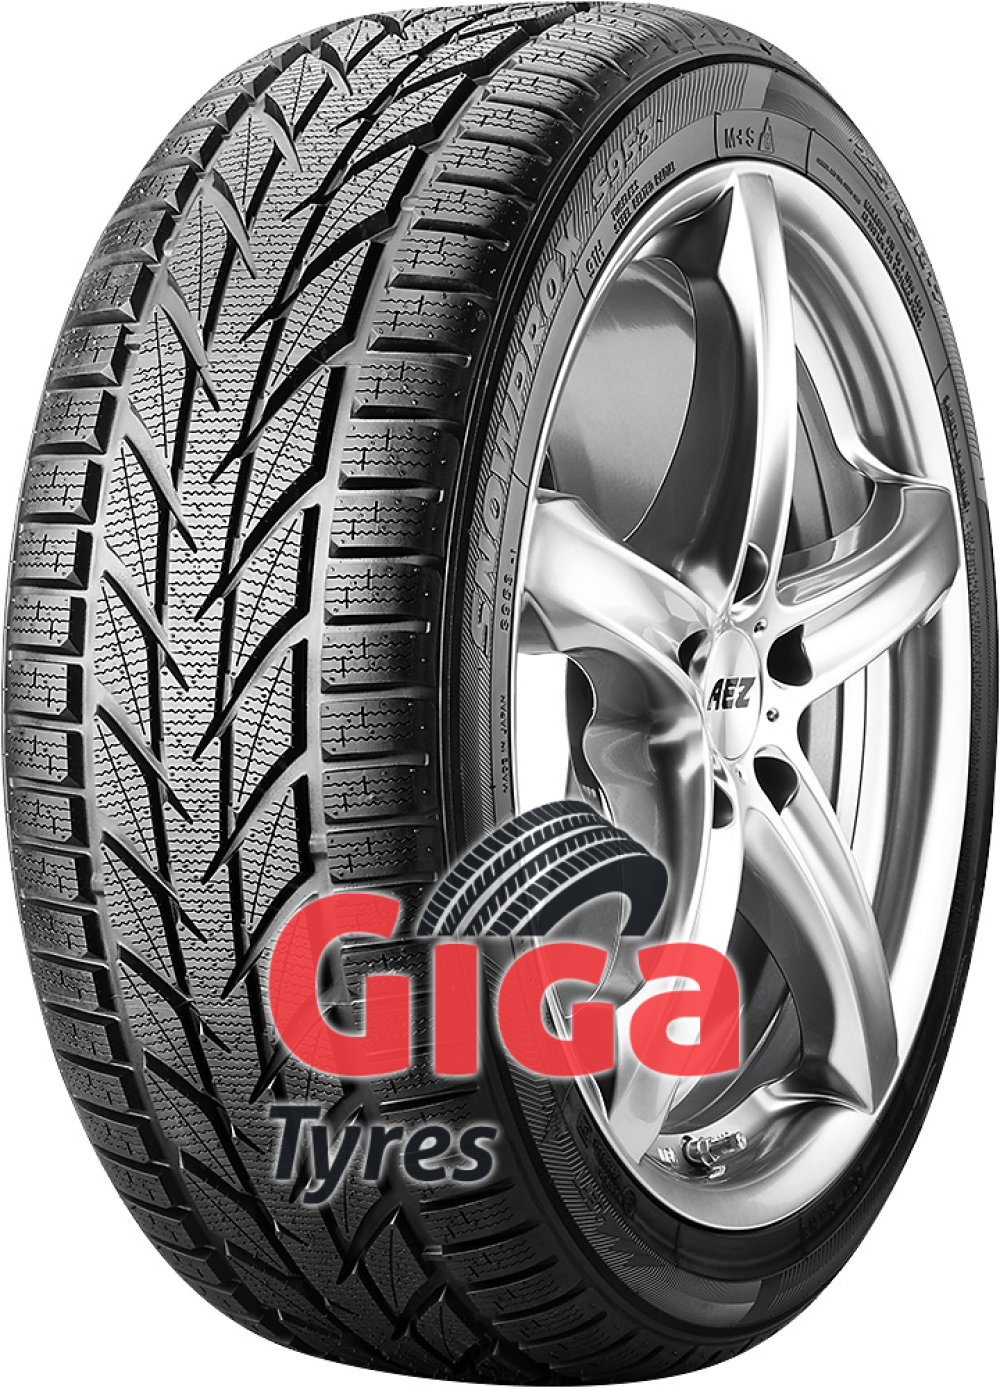 Toyo Snowprox S 953 ( 245/45 R17 99V XL , with rim protection ridge (FSL) )